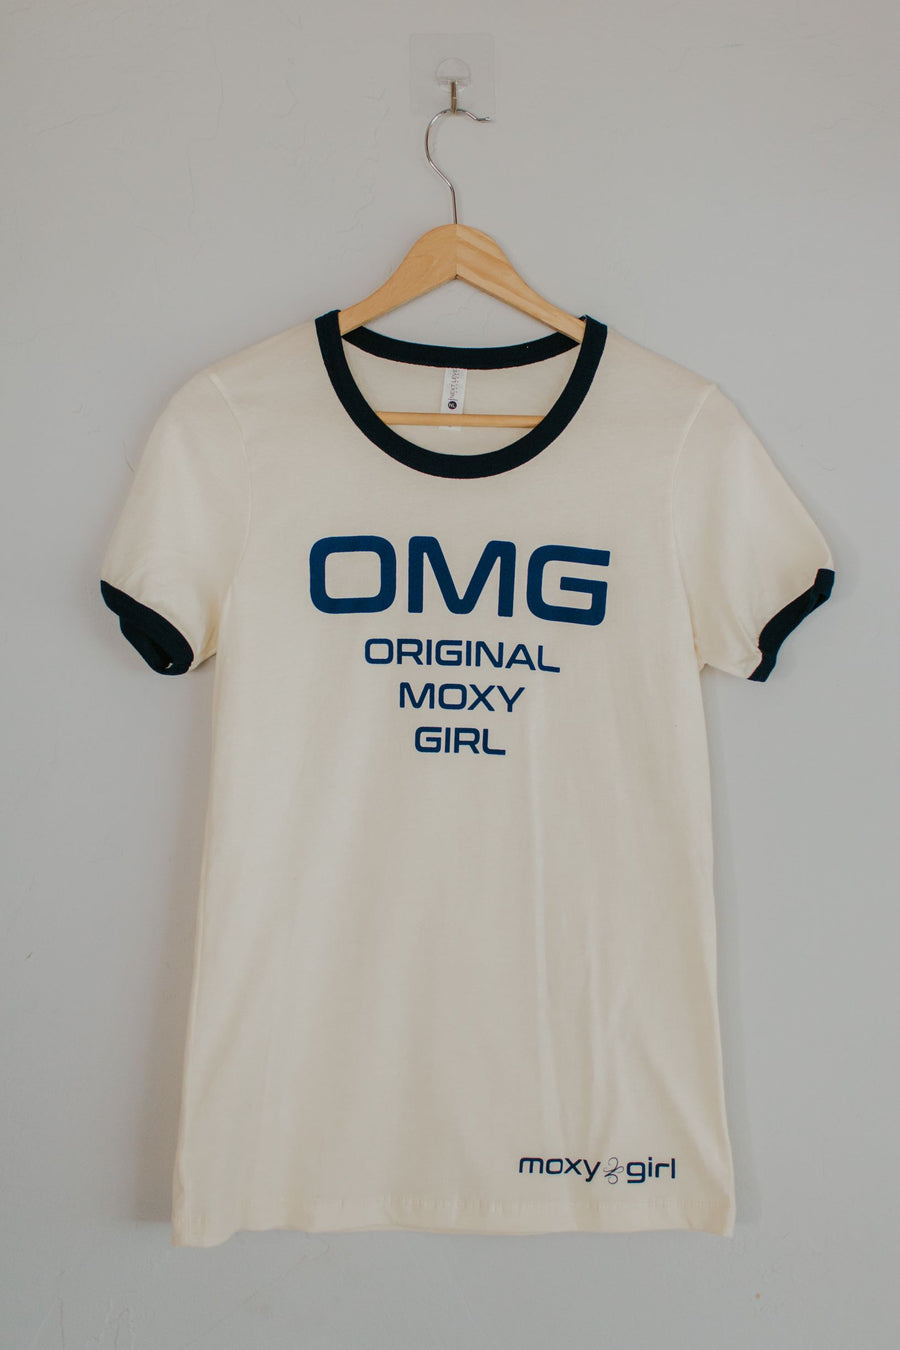 OMG Original Moxy Girl short sleeve ringer tee